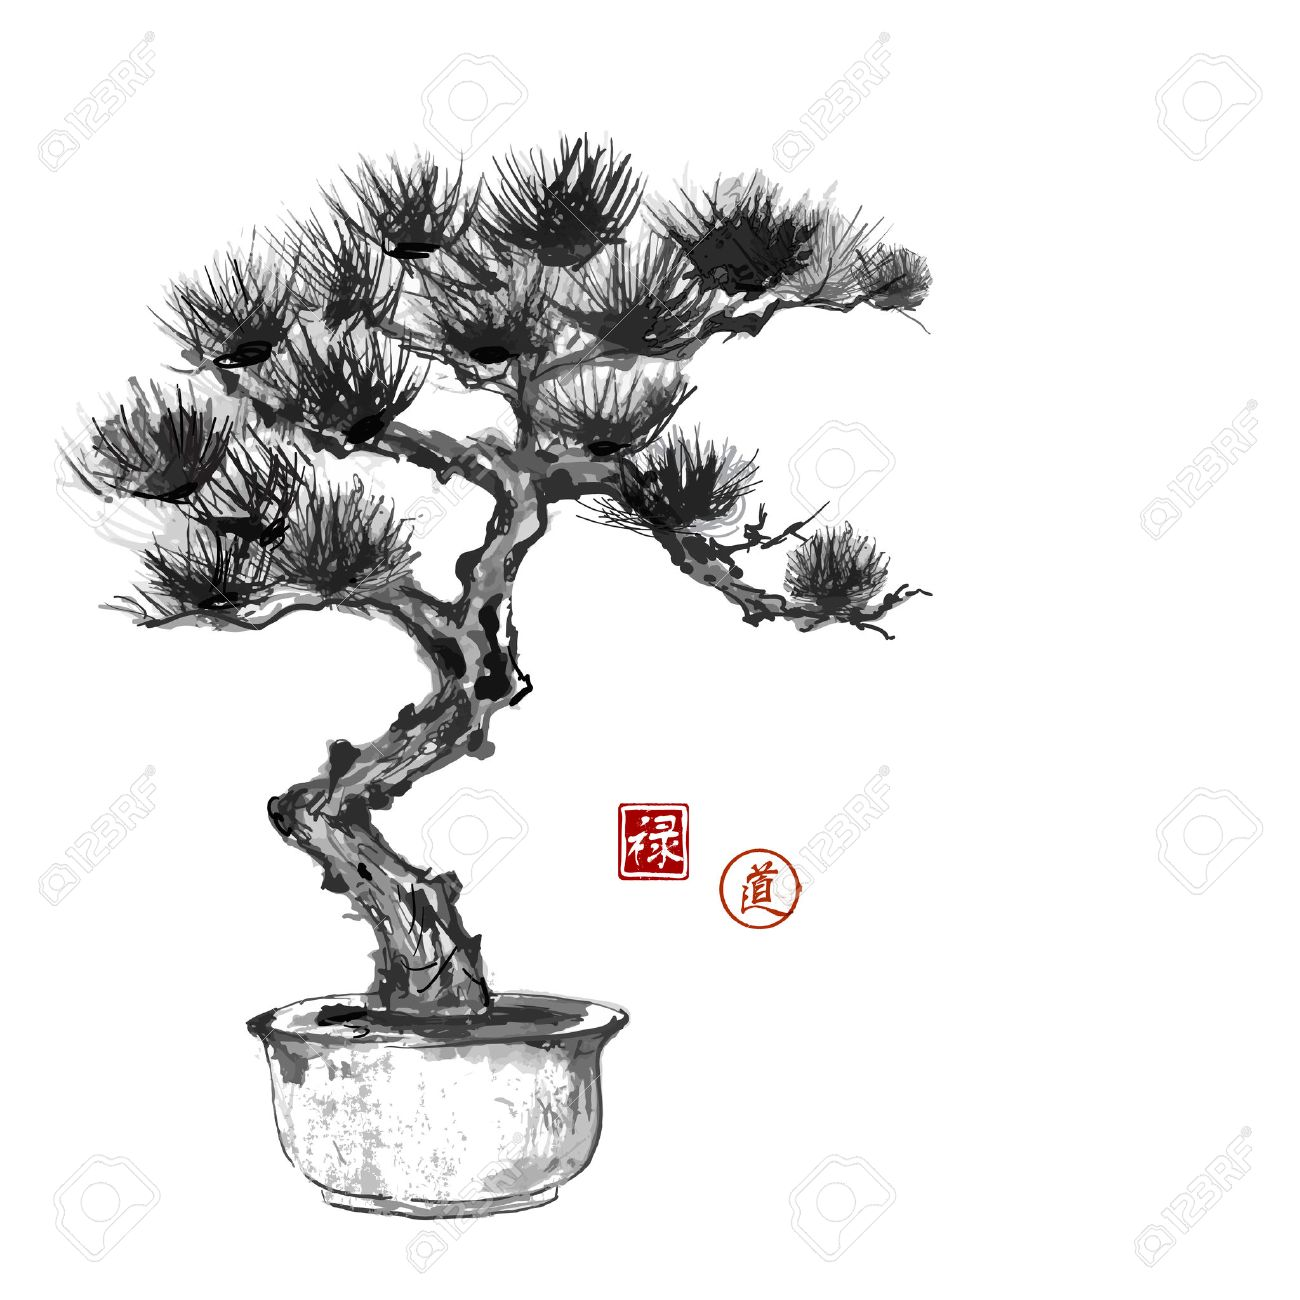 Bonsai pine tree hand hand-drawn with ink in traditional Japanese style sumi-e. Contains hieroglyphs - happiness, luck - 59495250